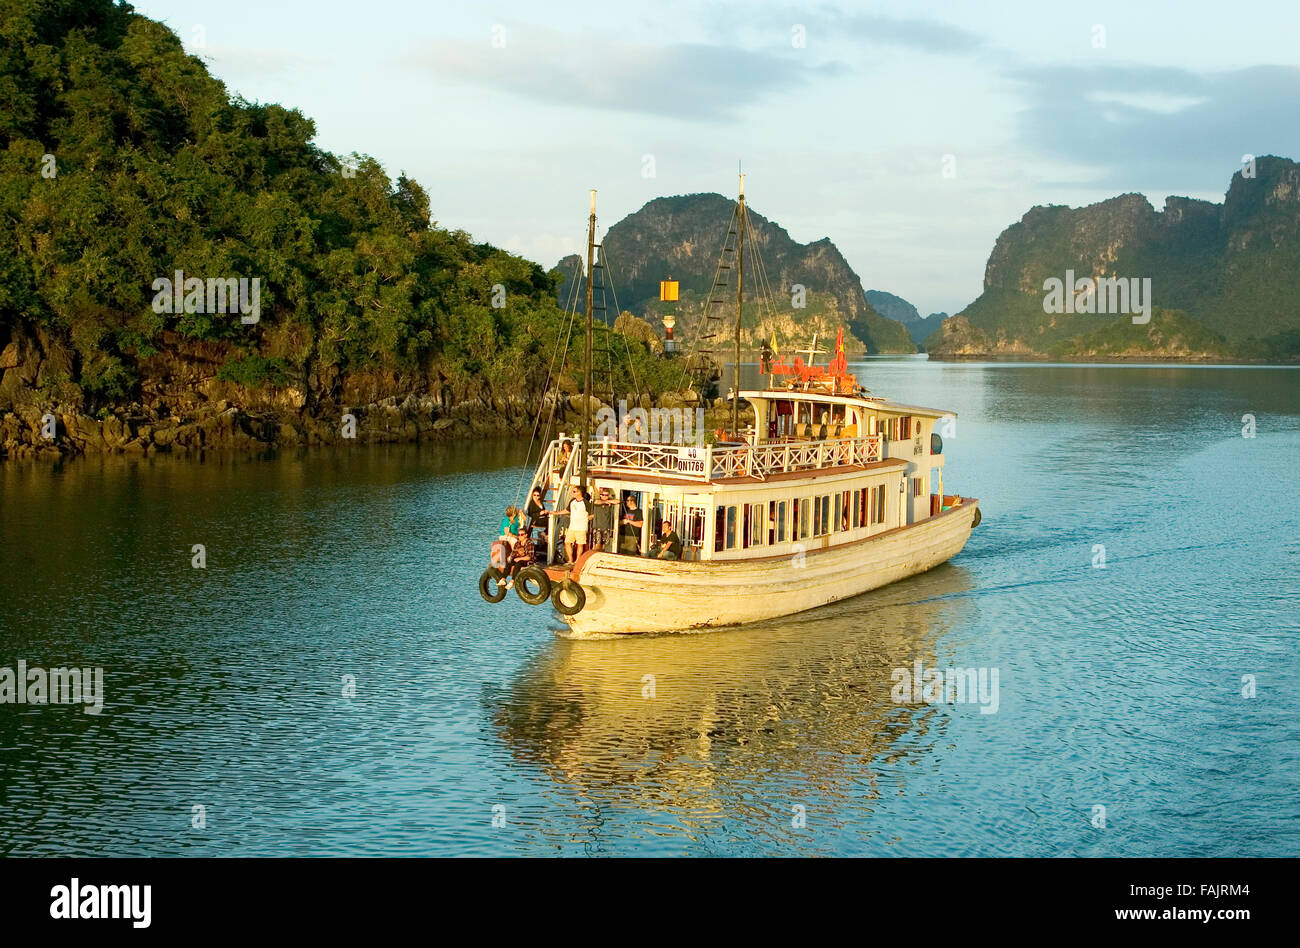 Tourist boat and limestone karst in Ha long, Halong Bay, Vietnam, Ha long, Halong Bay, Vietnam - Stock Image